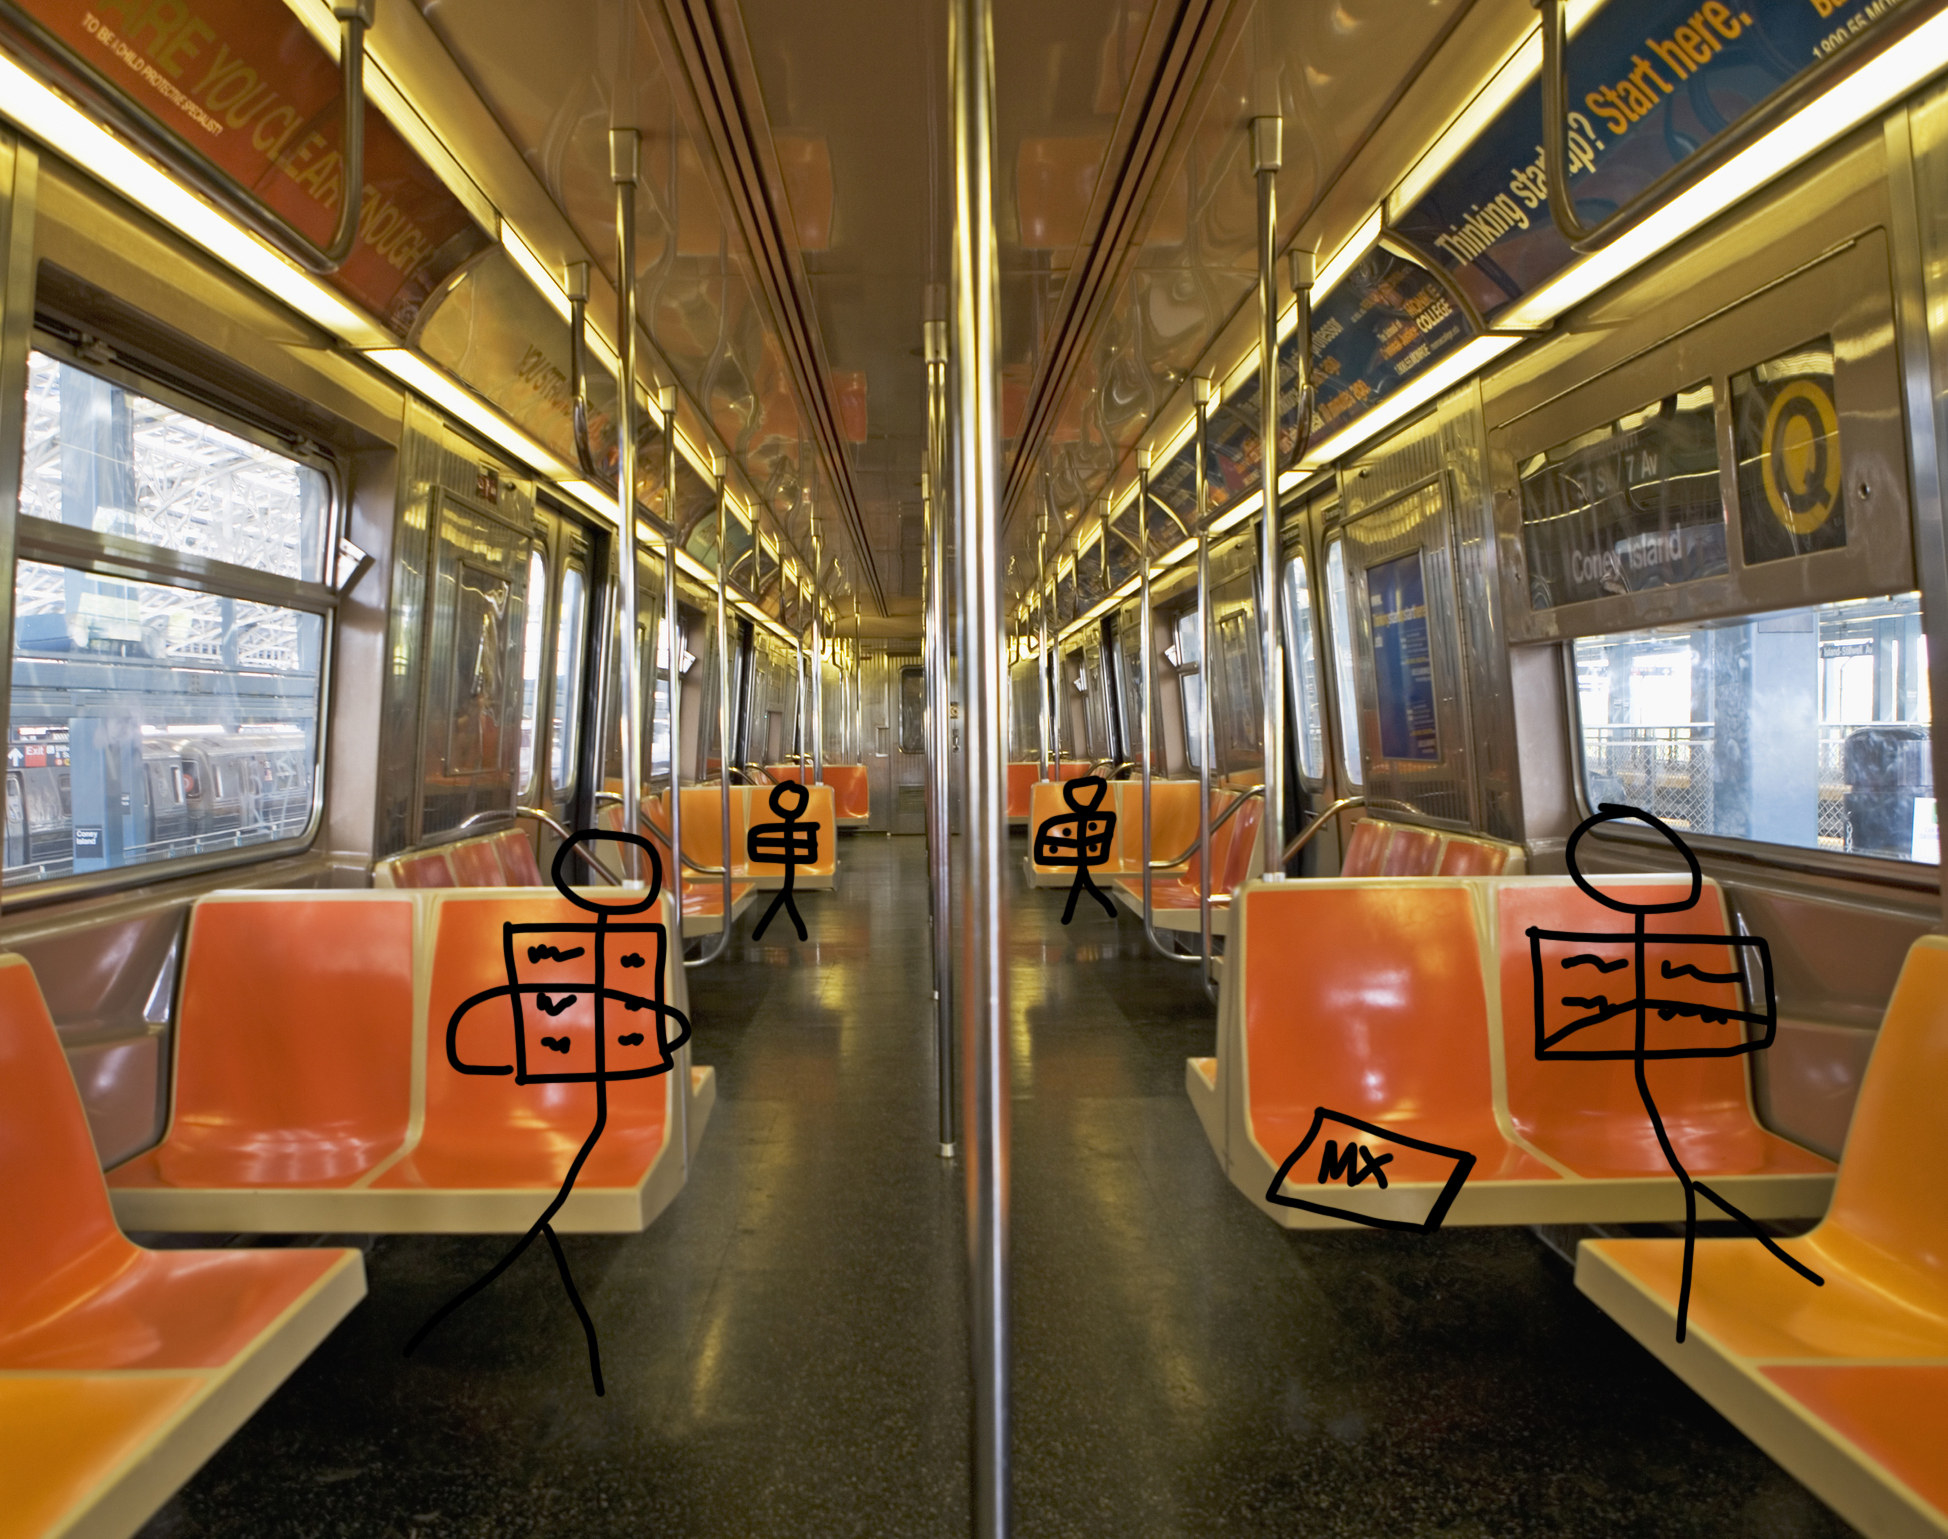 A stock image of train carriage with stick people sitting down on the seats and reading mX